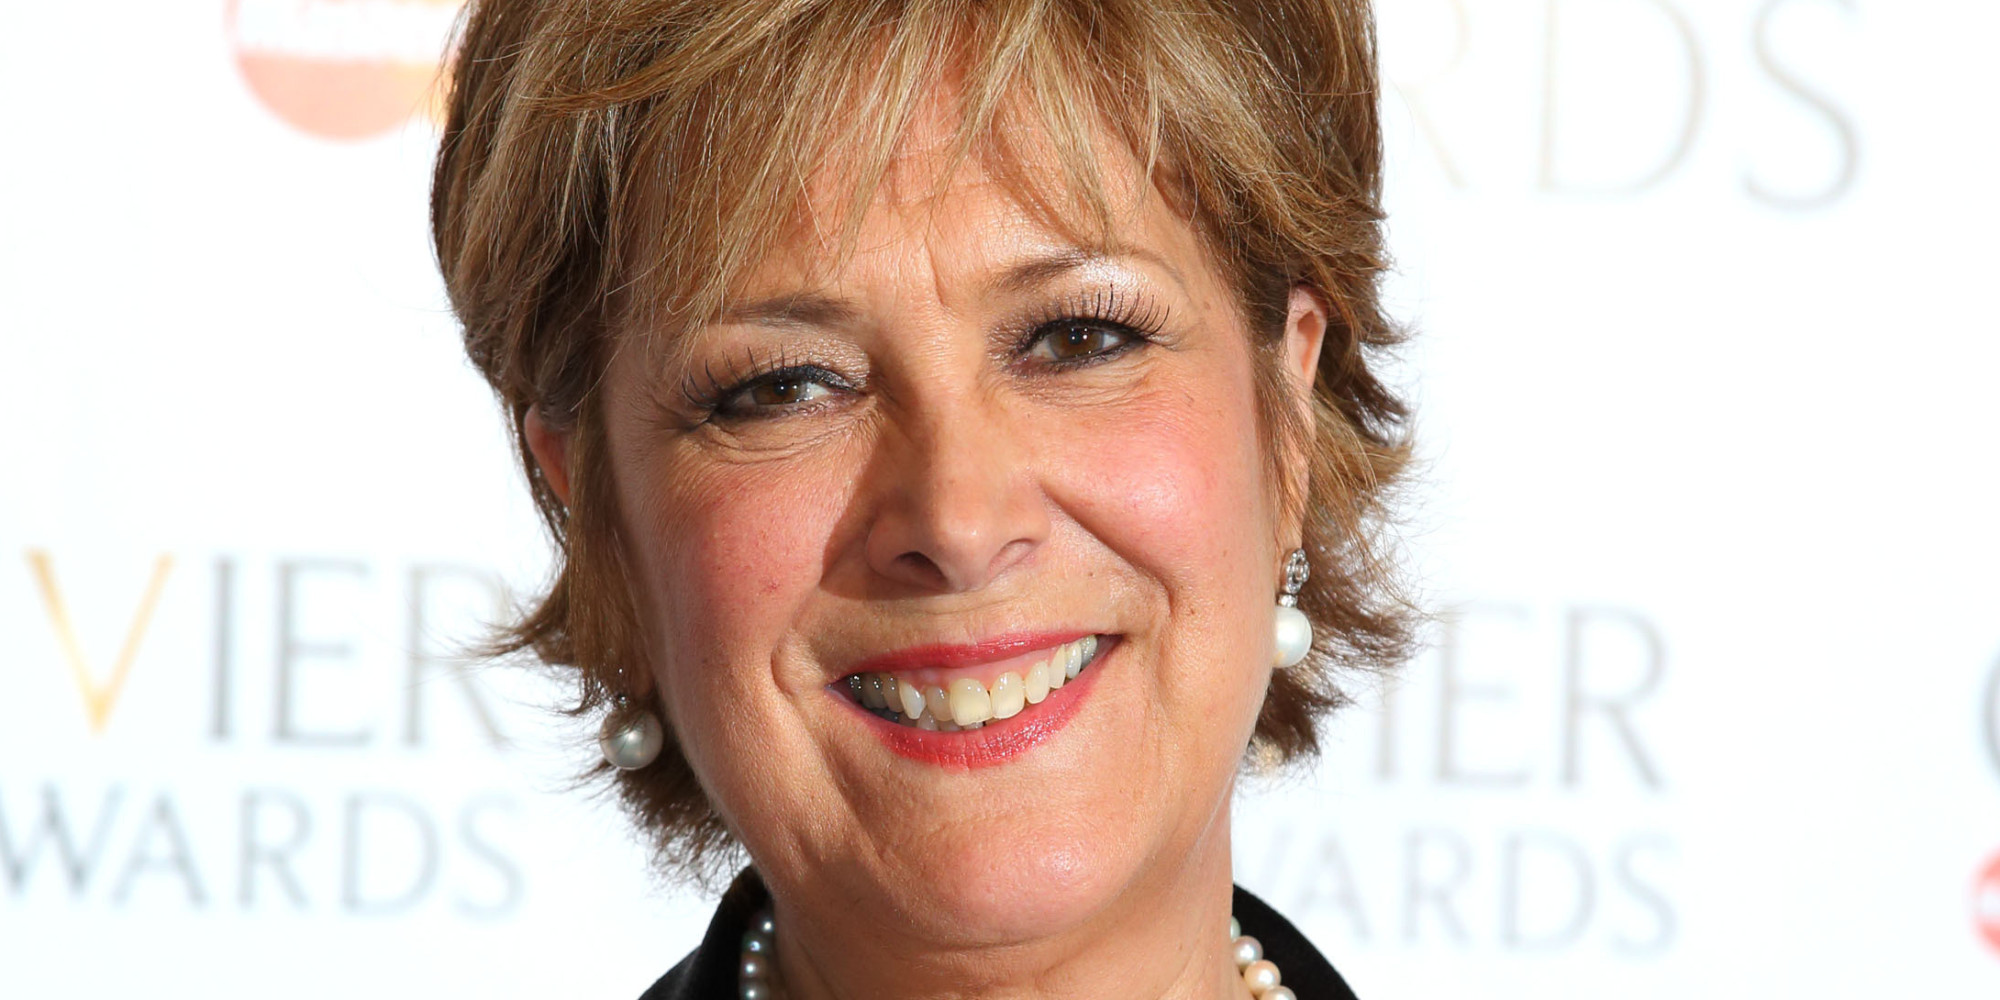 lynda bellingham gravelynda bellingham death, lynda bellingham imdb, lynda bellingham funeral, lynda bellingham photos, lynda bellingham midsomer murders, lynda bellingham wiki, lynda bellingham rose, lynda bellingham cancer, lynda bellingham sons, lynda bellingham will, lynda bellingham husband, lynda bellingham last interview, lynda bellingham twitter, lynda bellingham book, lynda bellingham grave, lynda bellingham young, lynda bellingham clothes, lynda bellingham ghost, lynda bellingham strictly come dancing, lynda bellingham new tricks